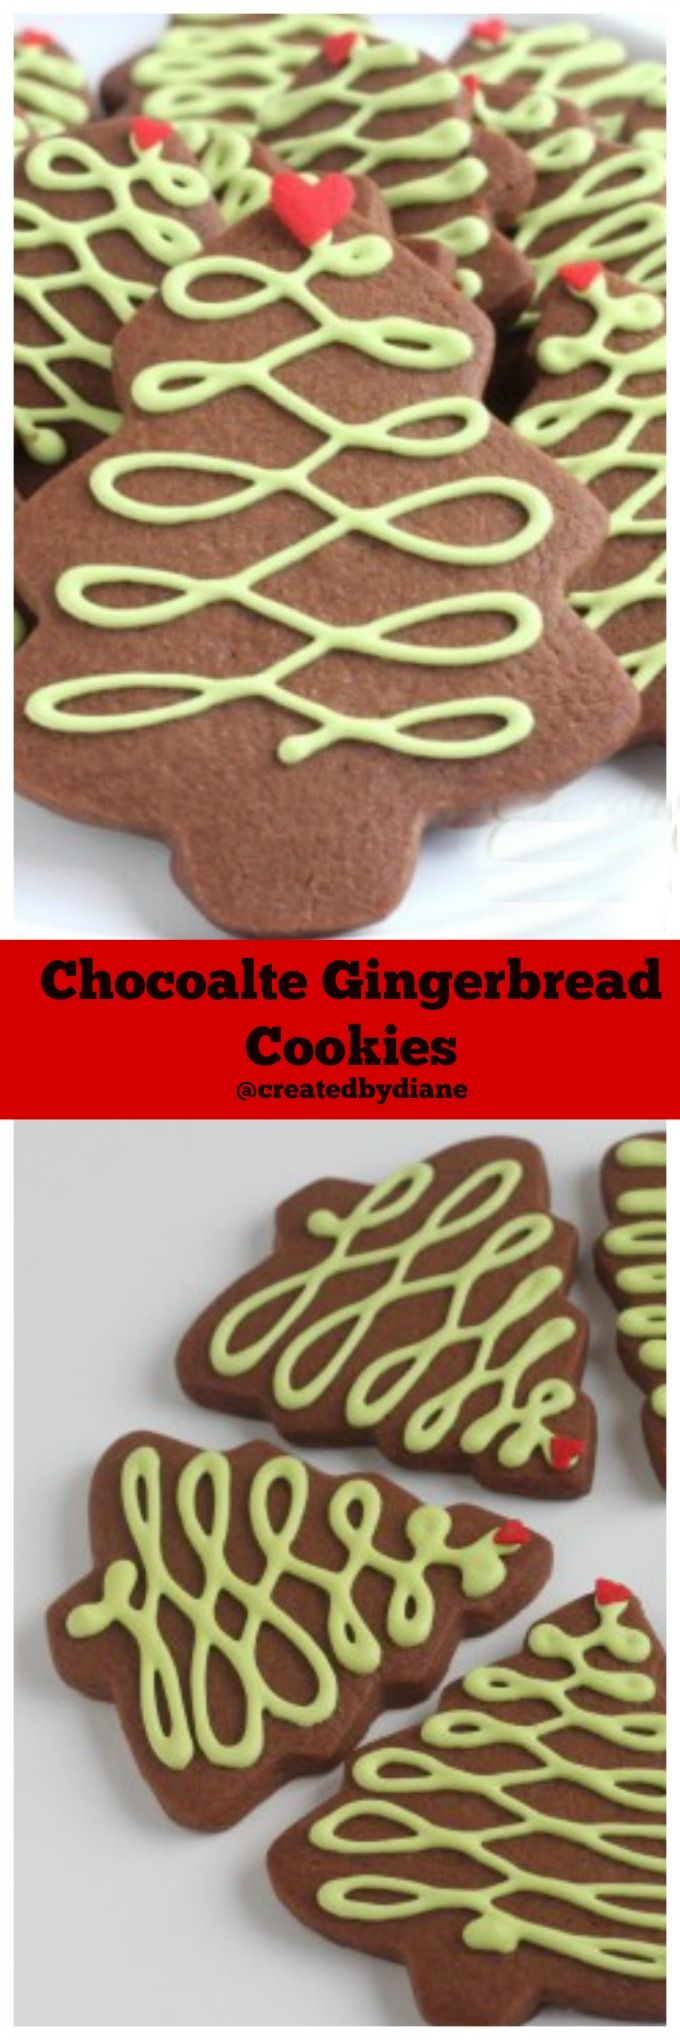 chocolate gingerbread cookies @createdbydiane